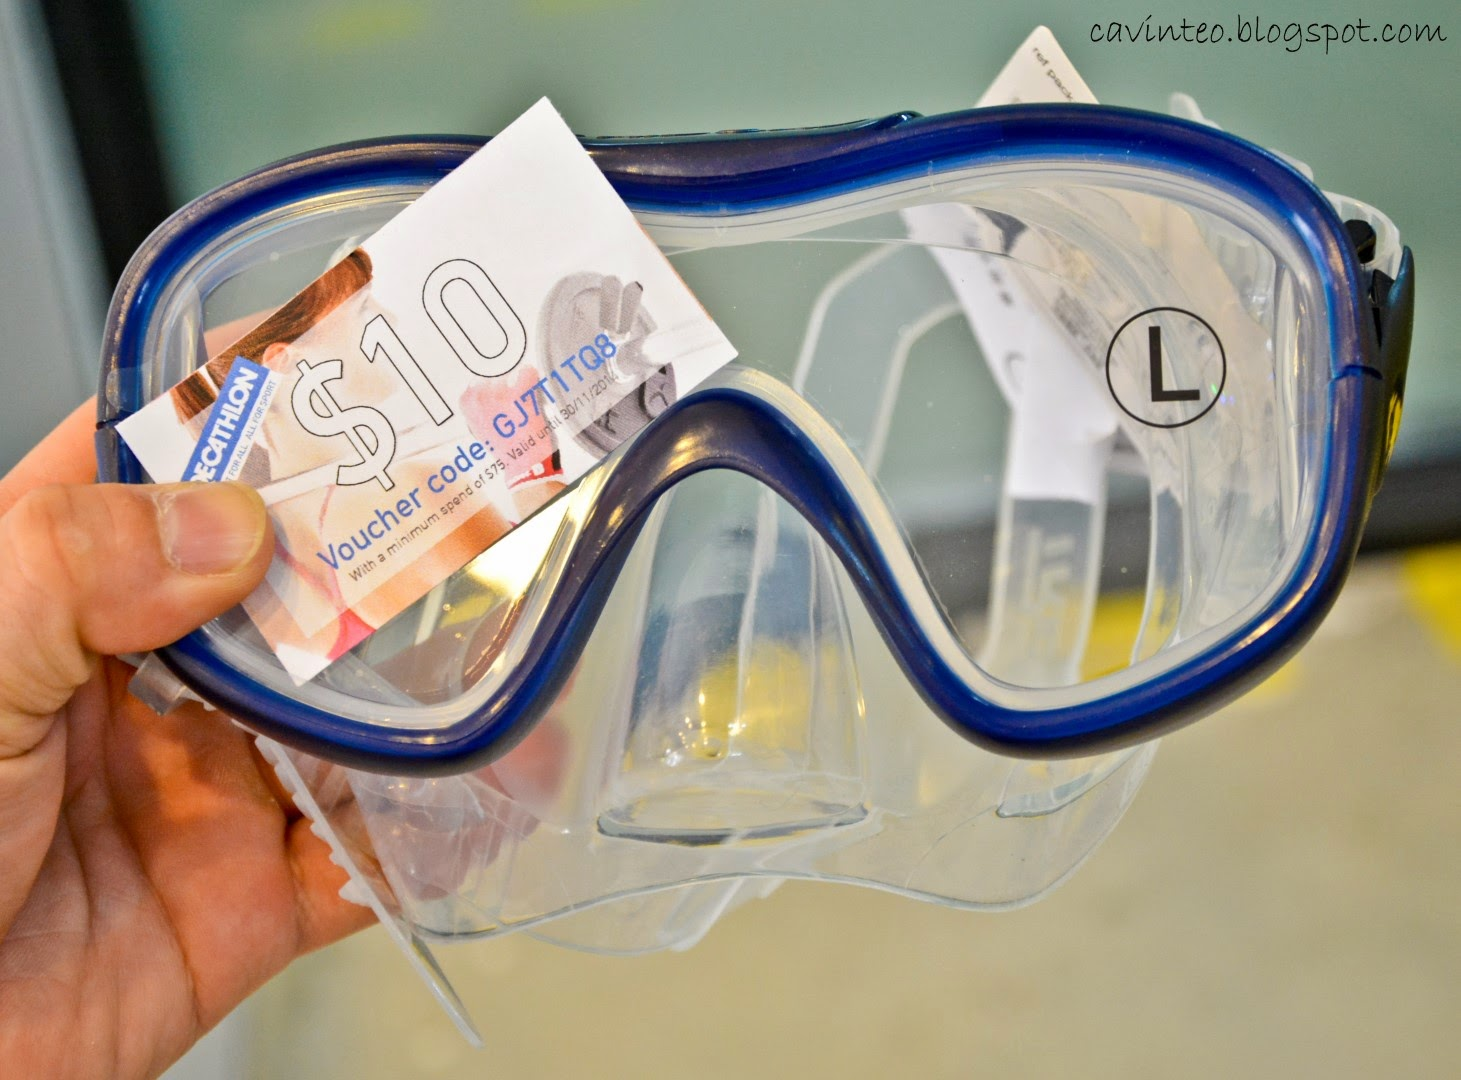 b58fa08e10 Entree Kibbles  Getting My Hands on EasyBreath Snorkeling Mask ...